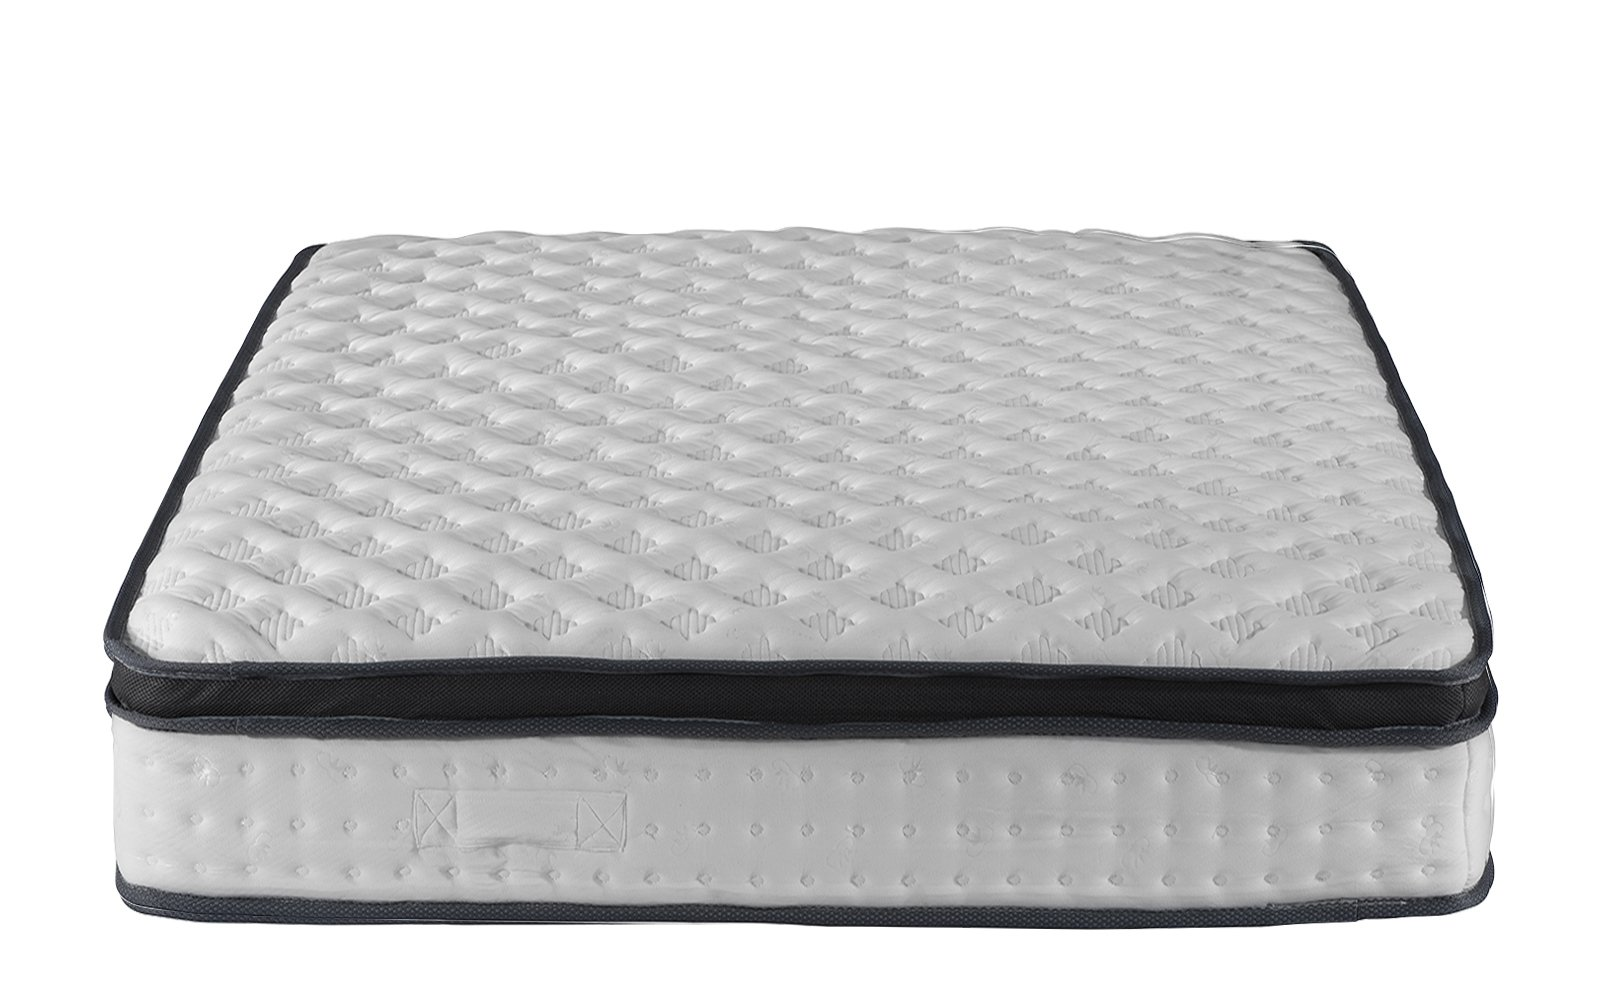 Swiss Ortho Sleep High Density 13-inch Hybrid Memory Foam and Spring Mattress with Plush Pillow Top (Queen)